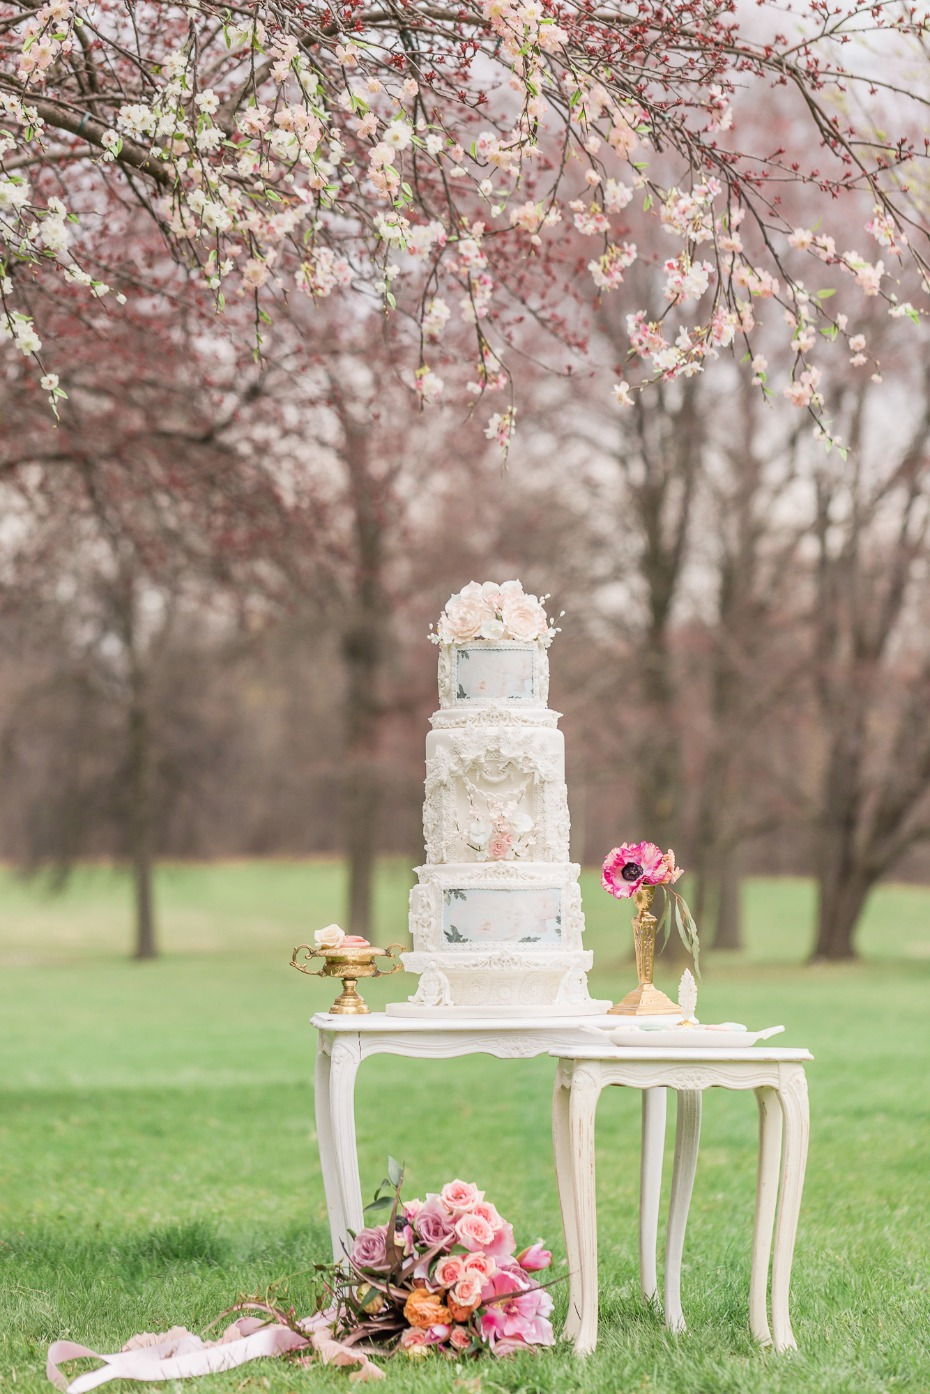 Intricate white wedding cake